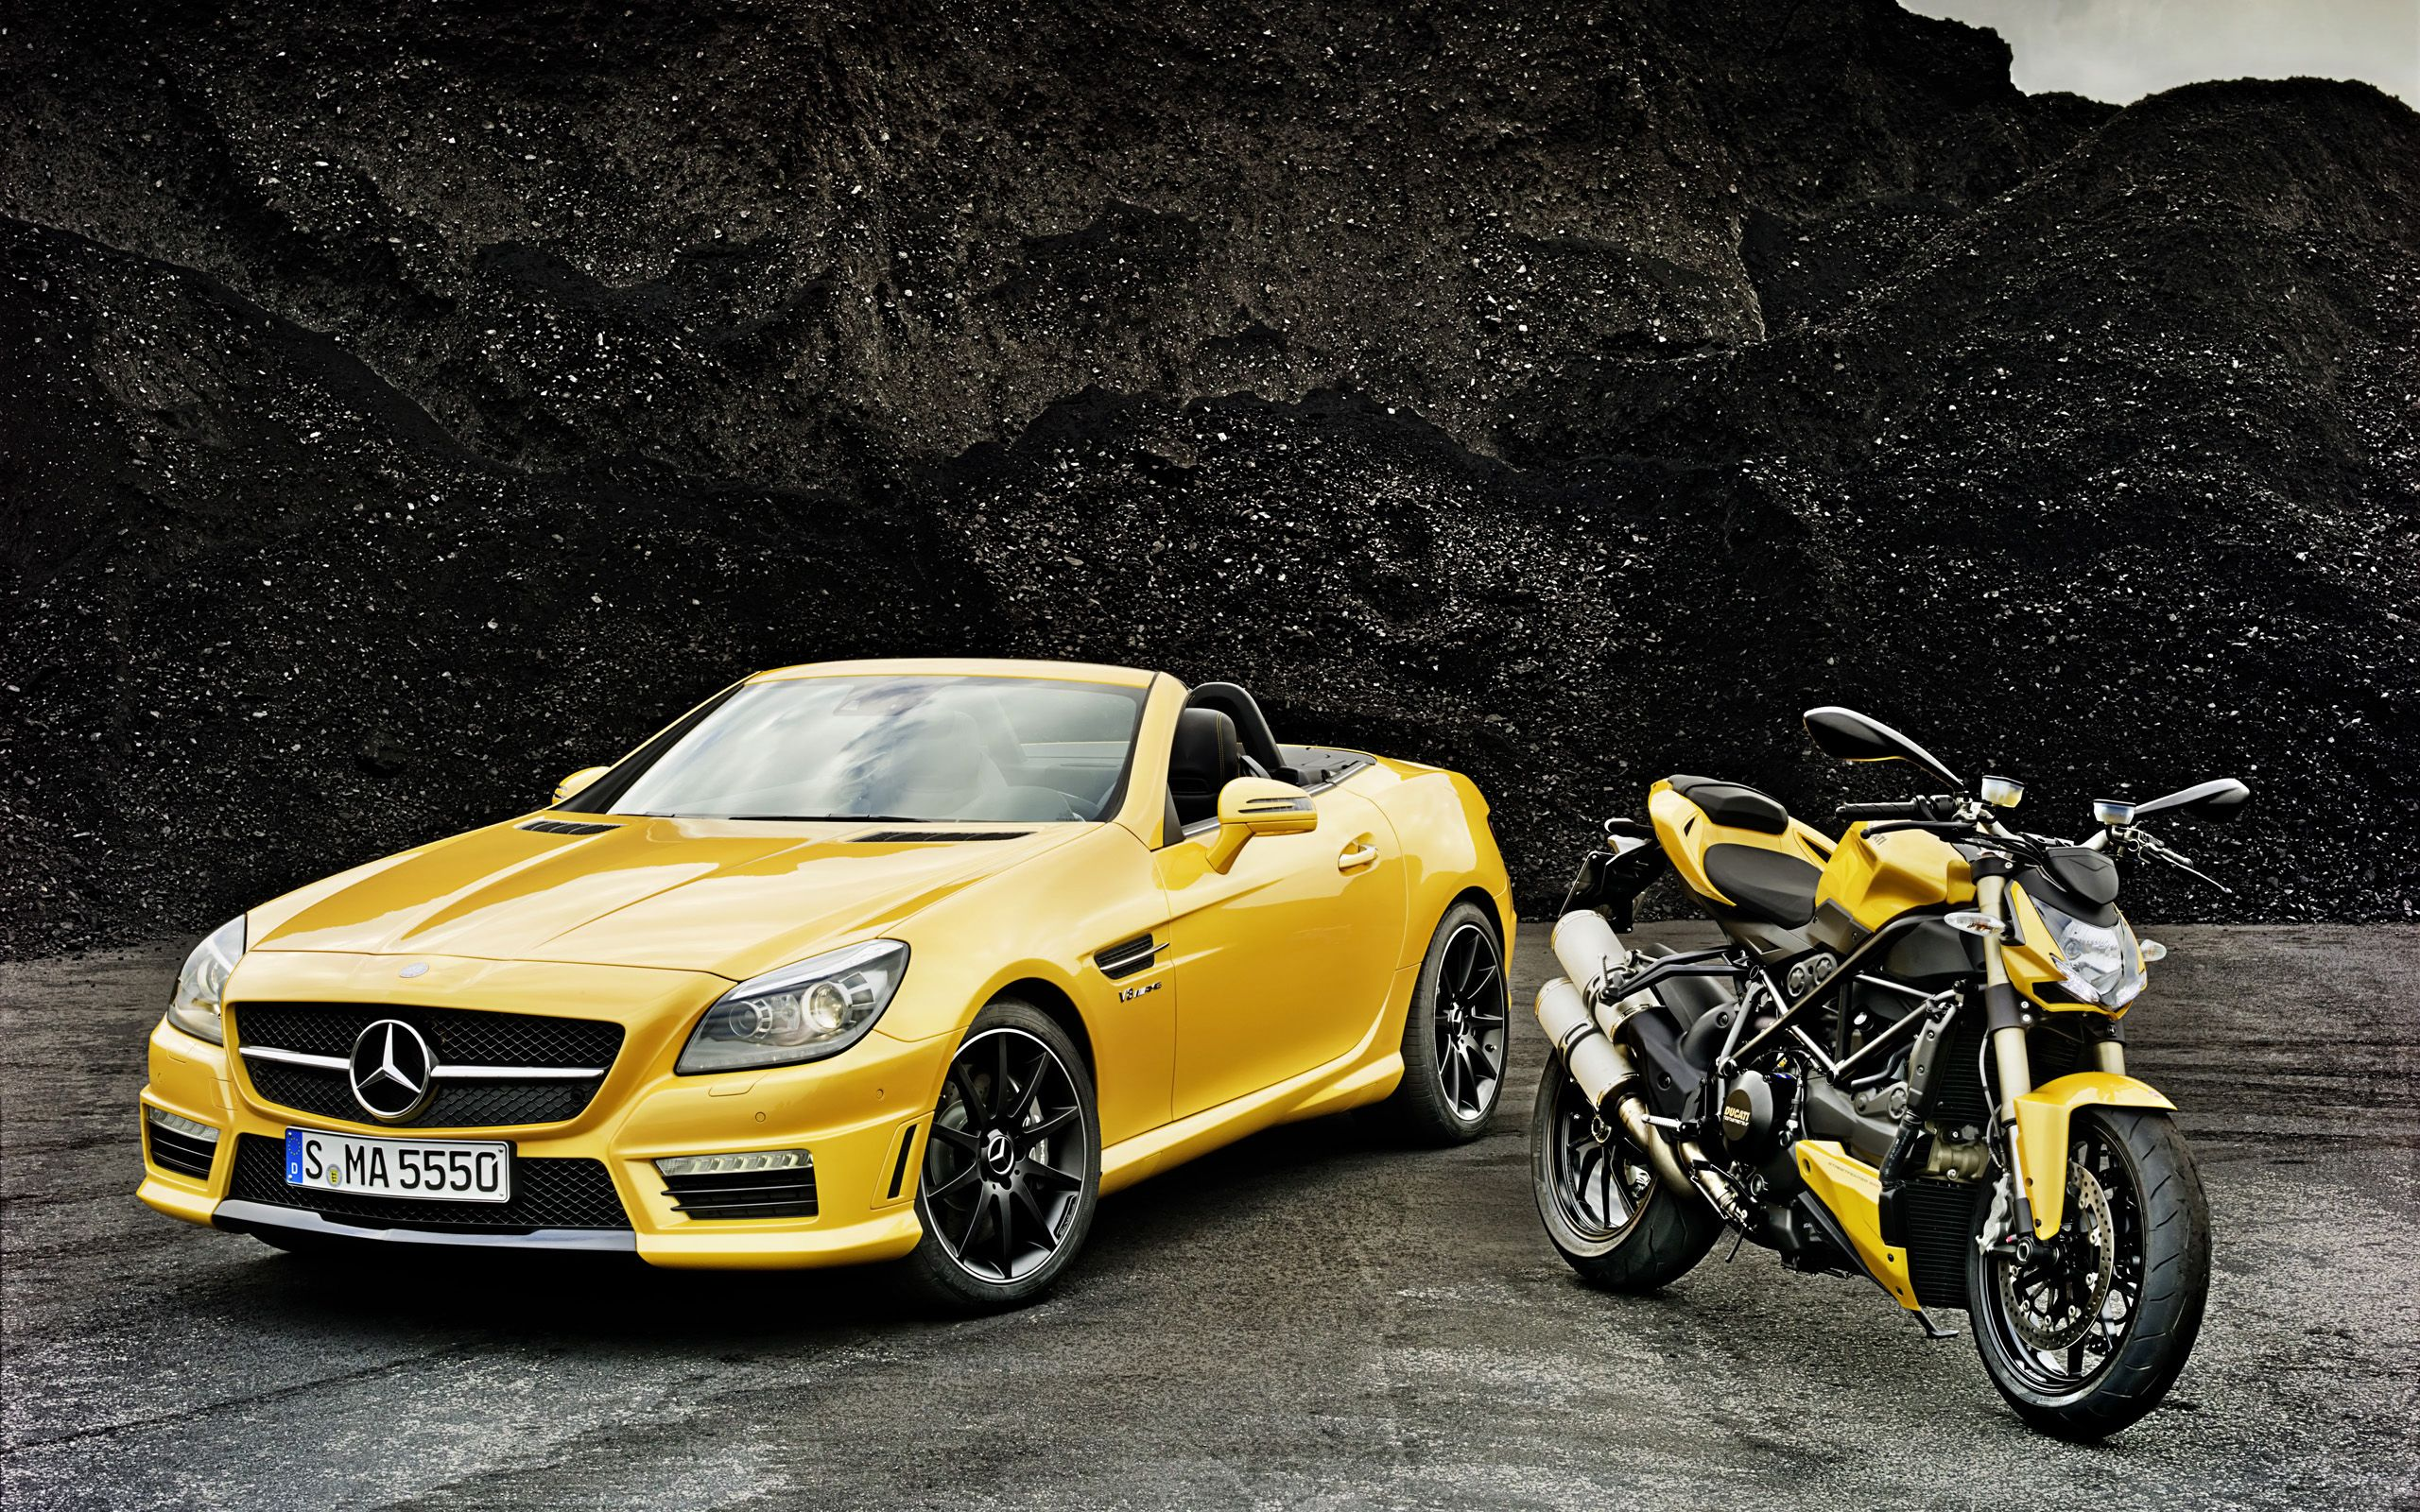 2012 Mercedes Benz Slk 55 Amg And Ducati Streetfighter 848